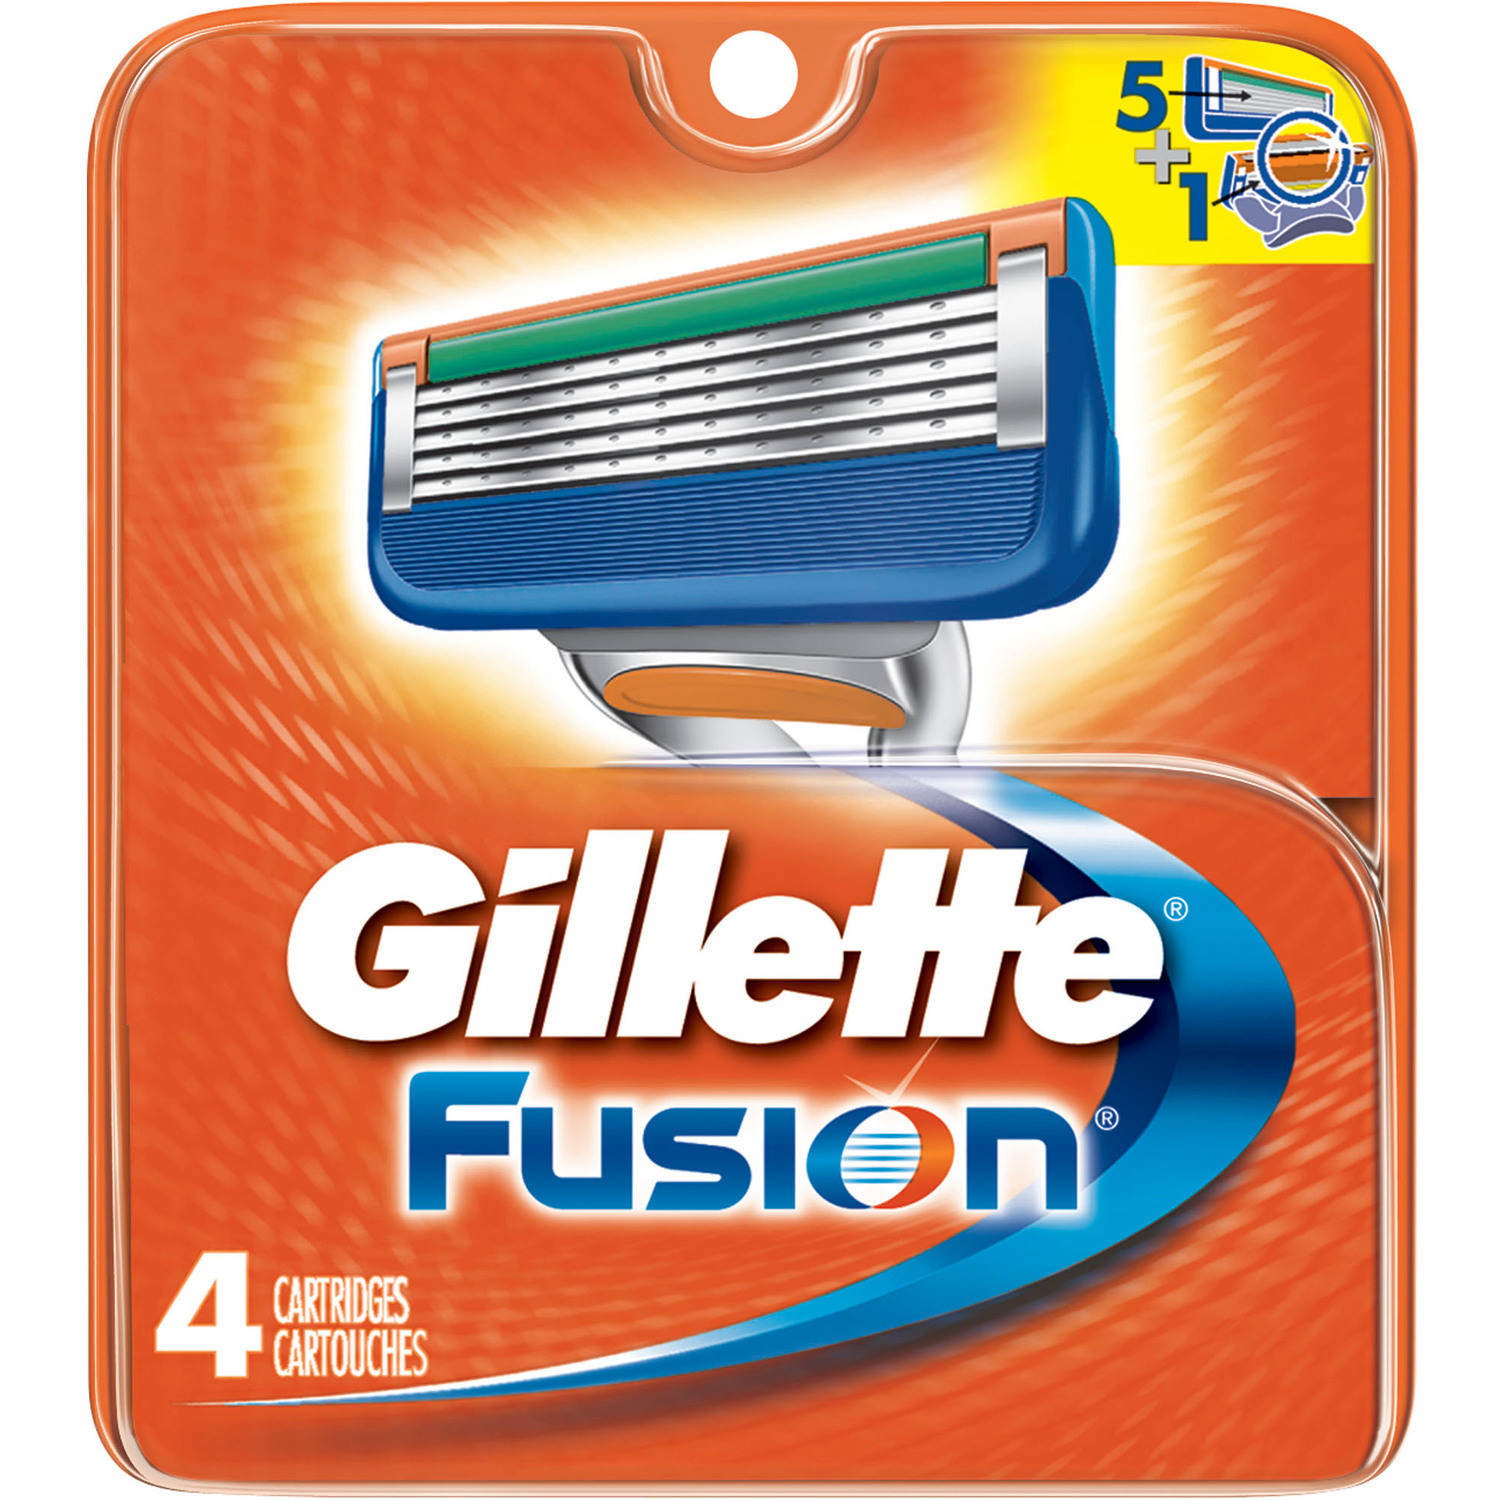 Gillette Fusion Razor Cartridge Refills, 4 Count